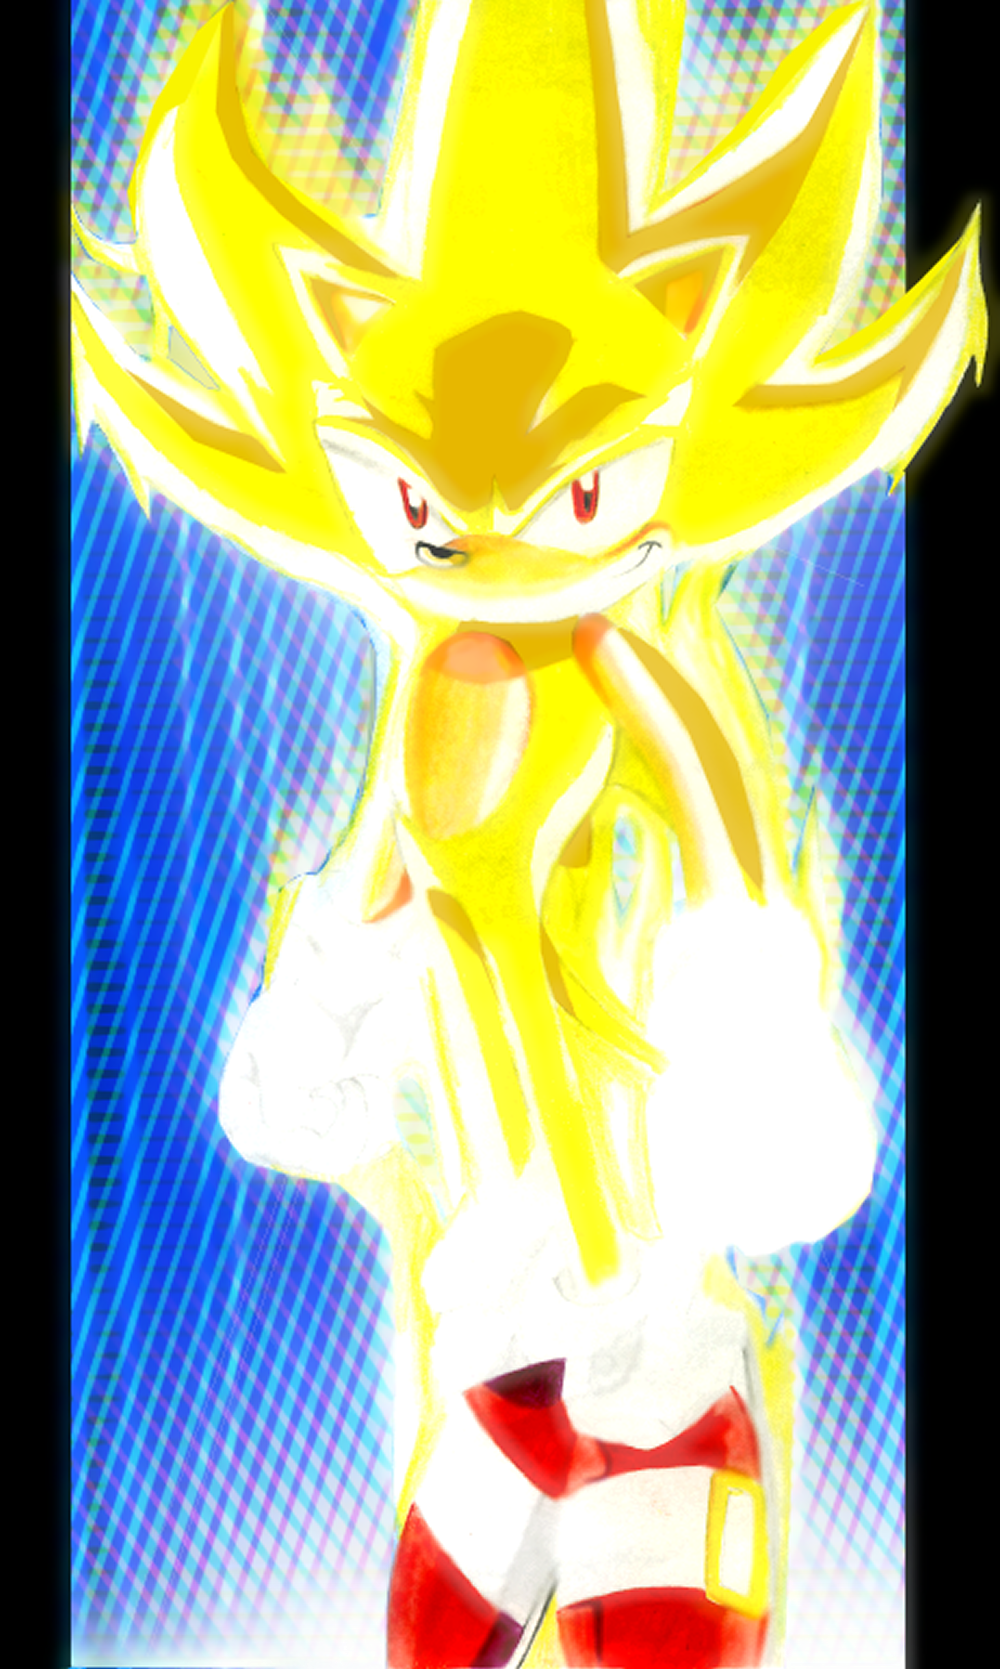 Super Sonic style